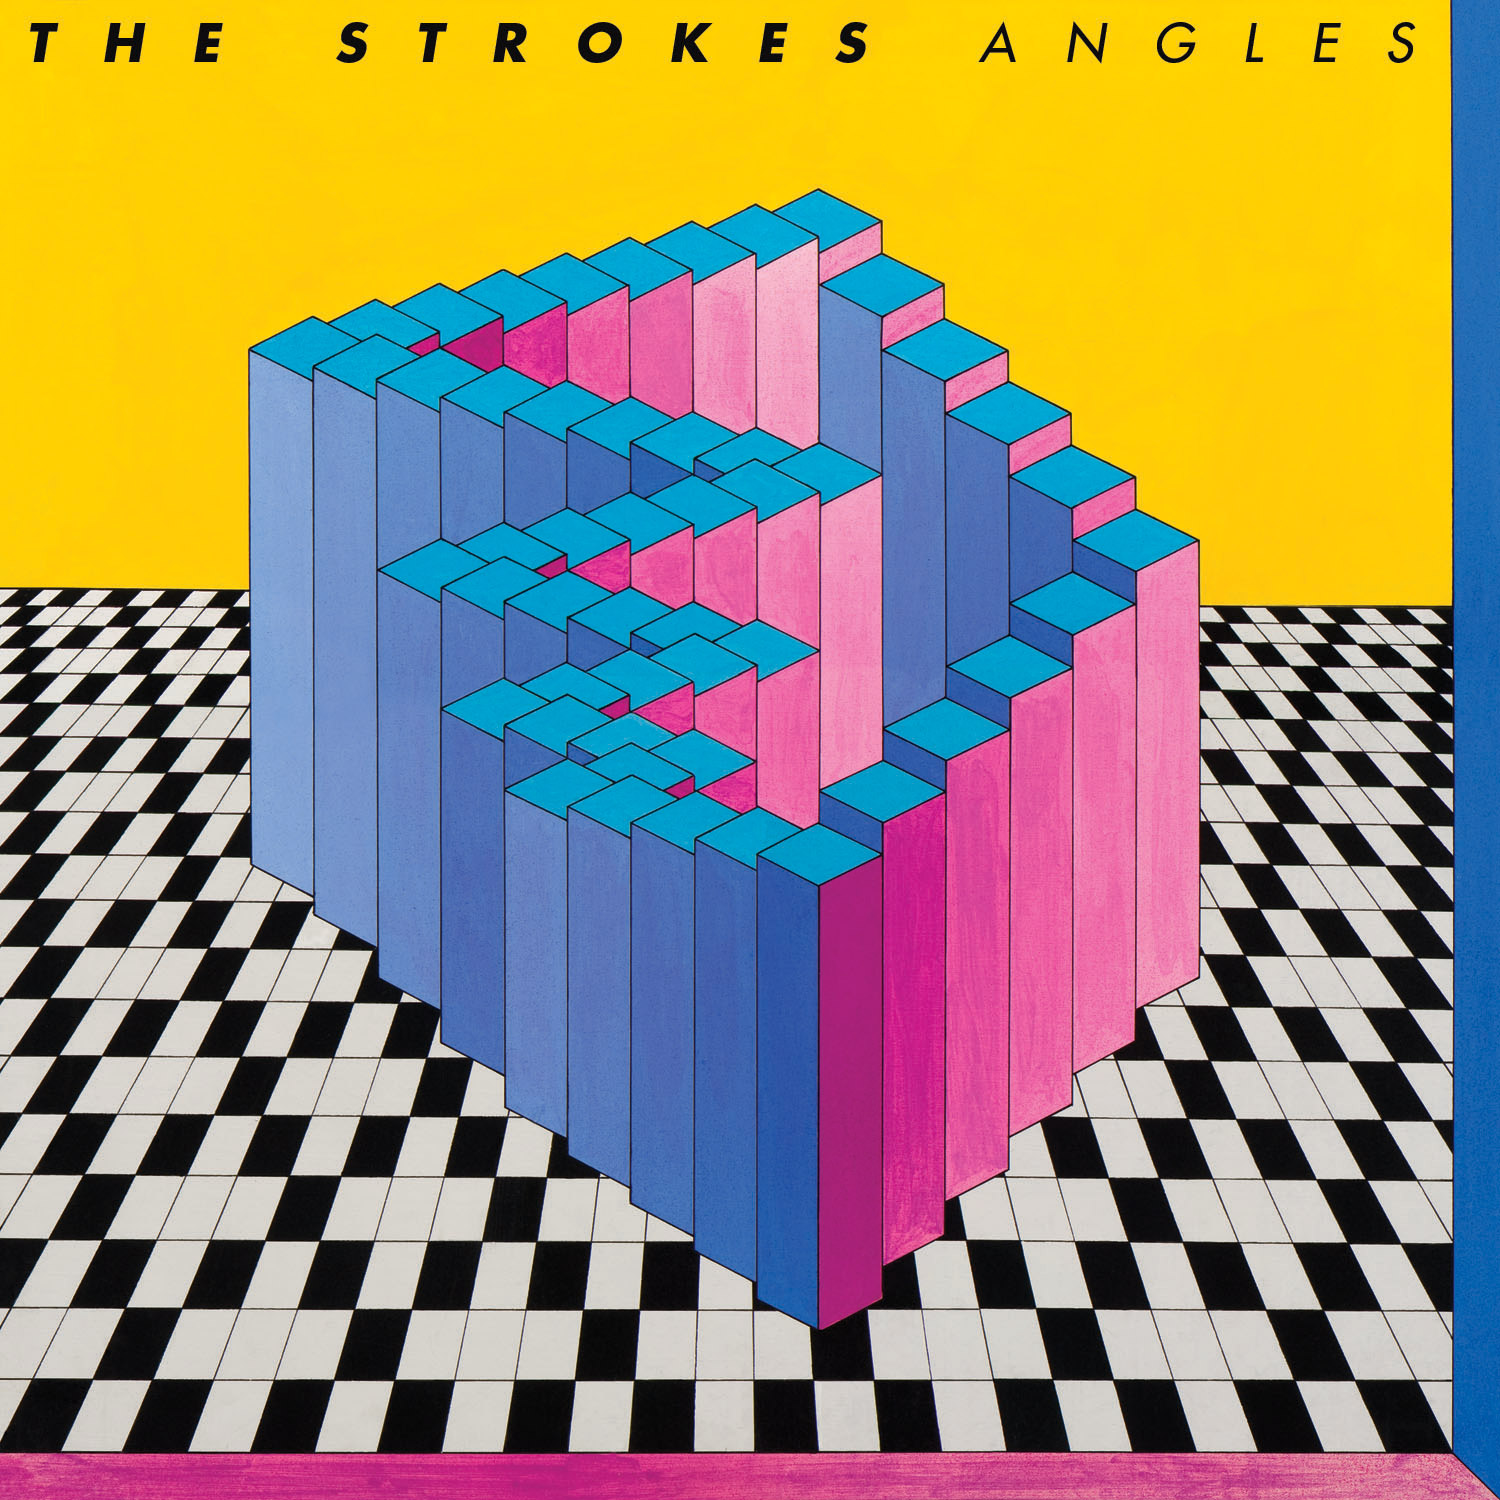 Fake Plastic Tunes The Strokes Angles Review